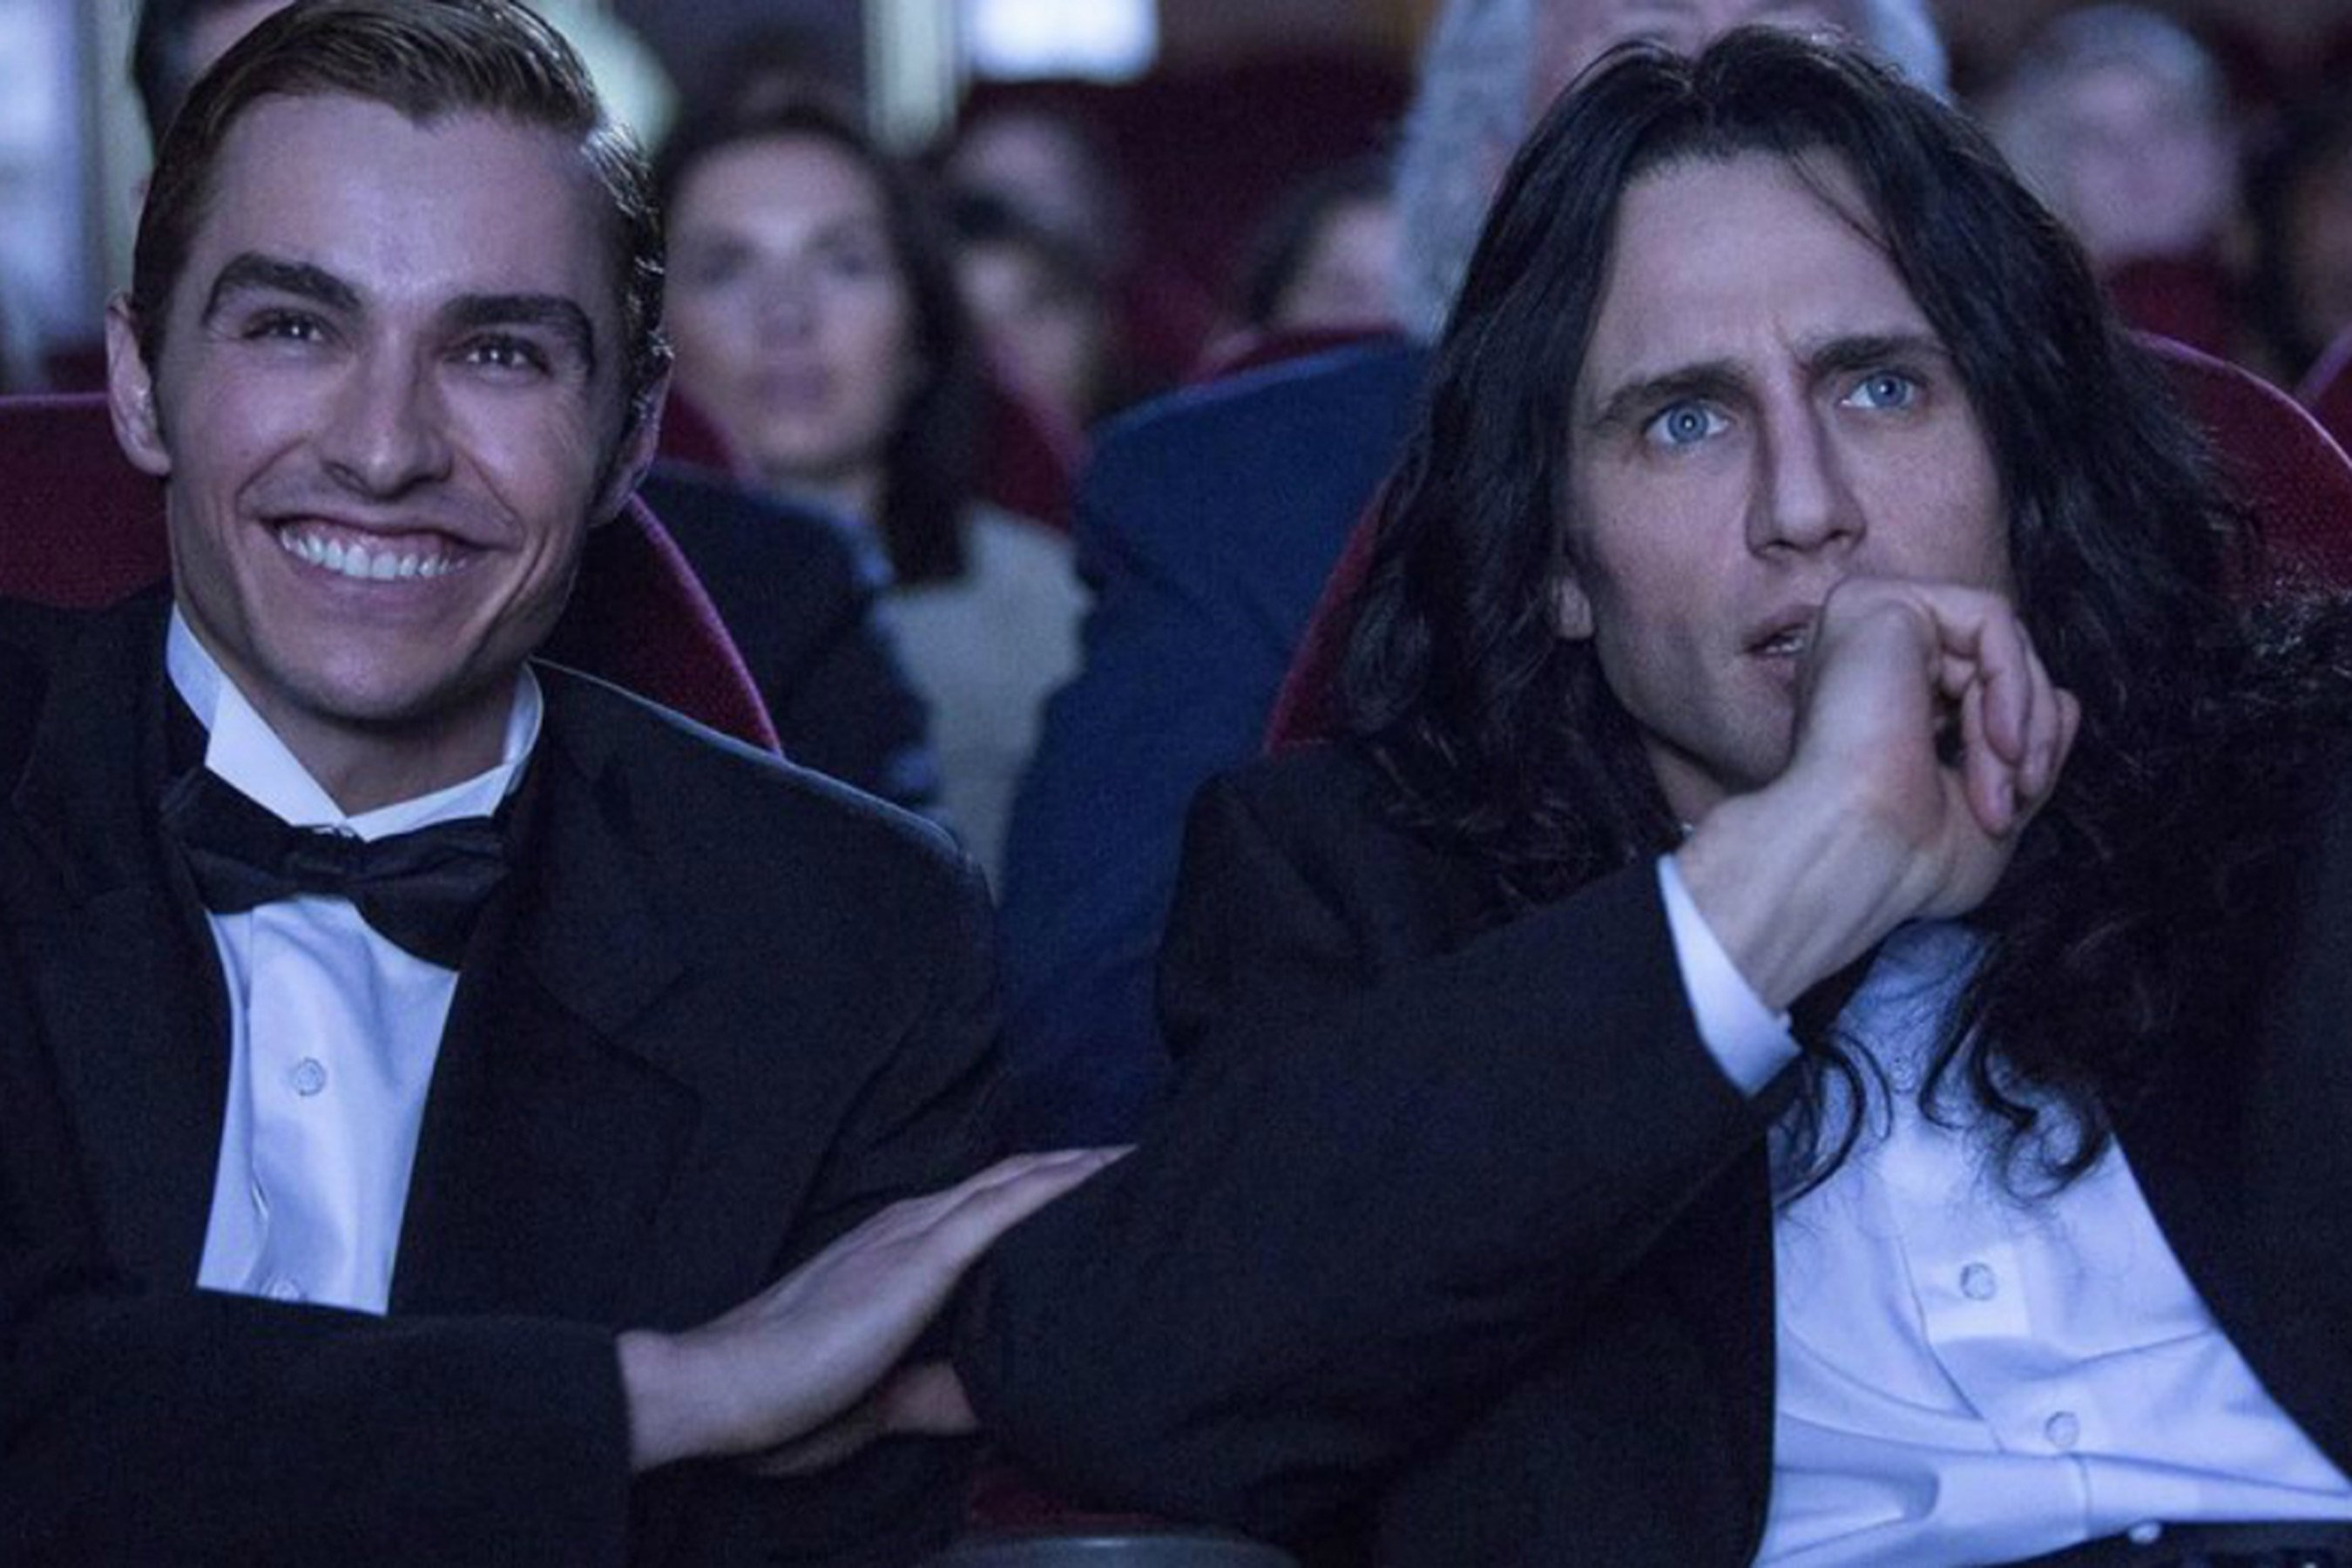 Oscar-nominated Disaster Artist writers on Tommy Wiseau's entrance